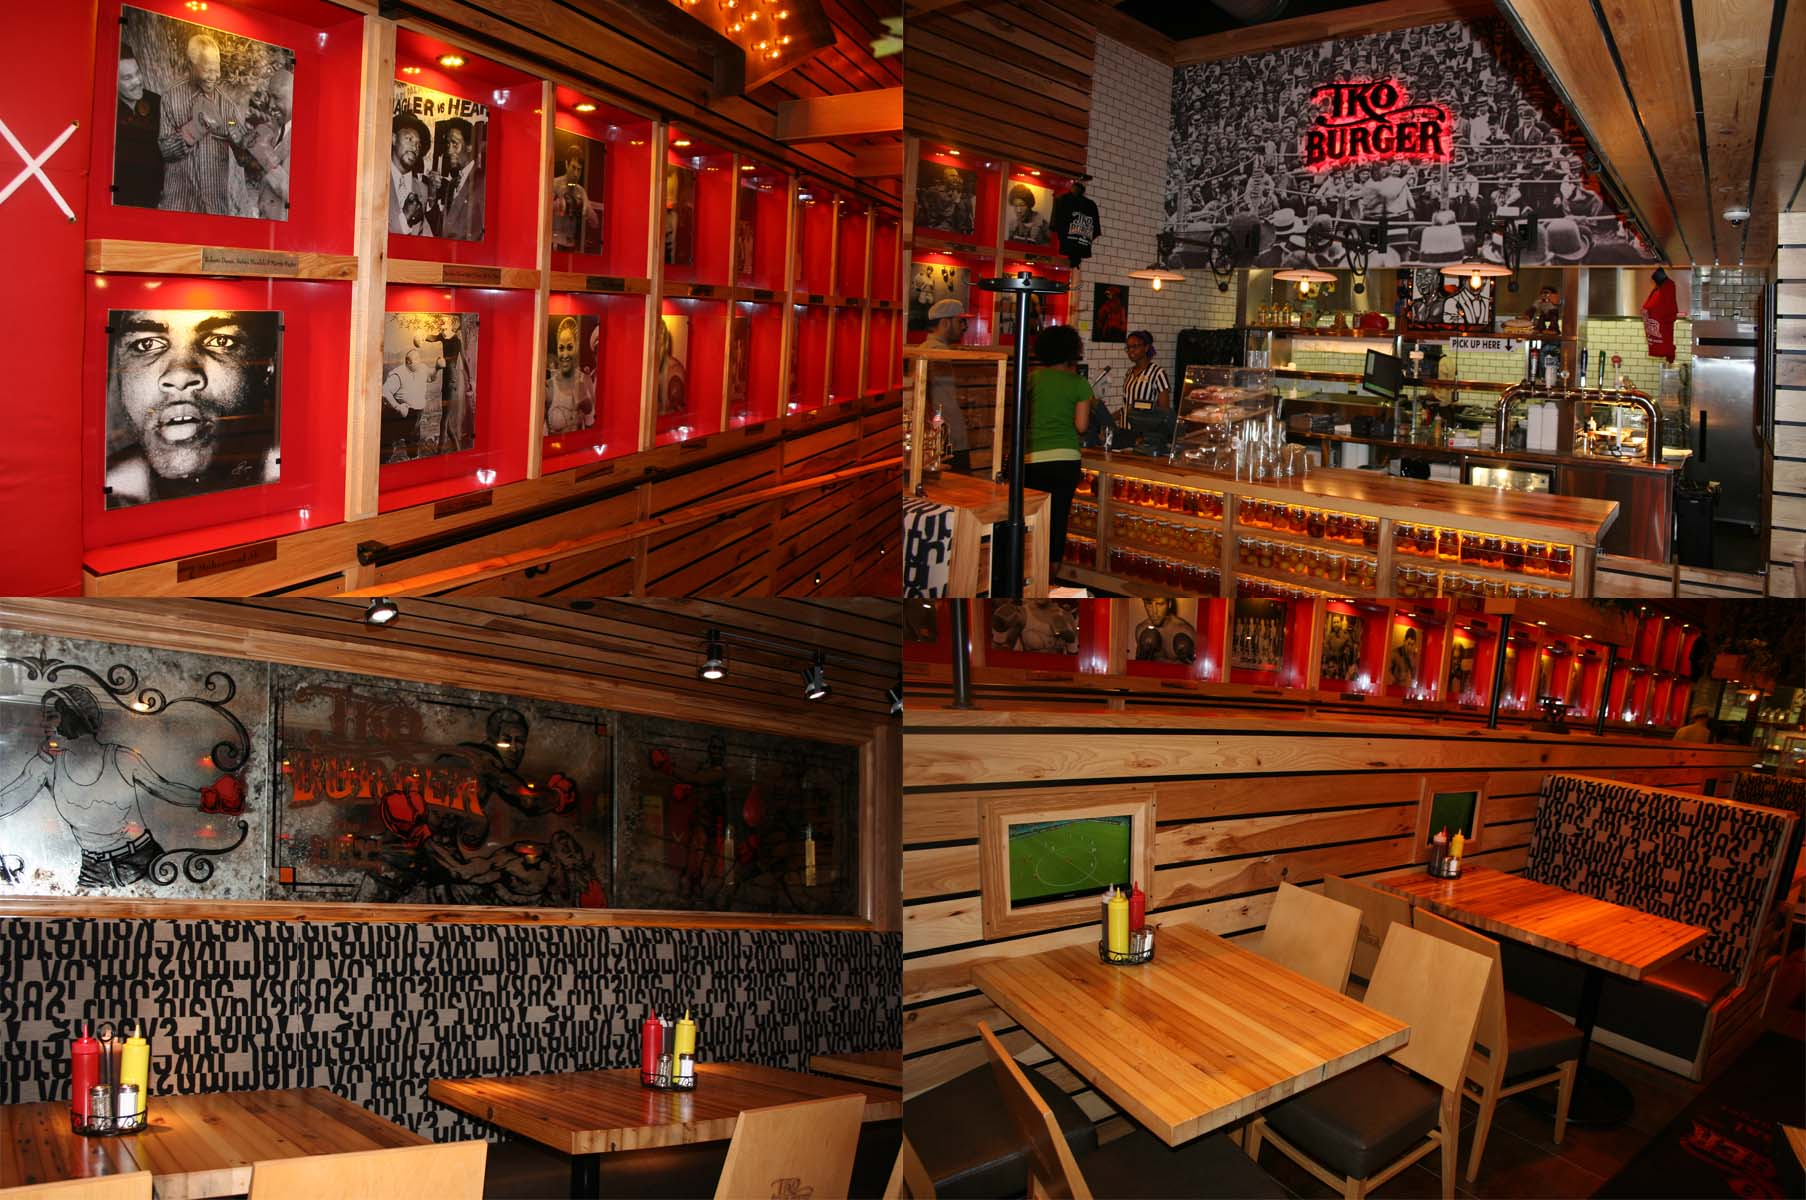 TKO Burger's interior has a boxing theme with photos, memorabilia and TVs showing sports. (Photos: Mark Heckathorn/DC on Heels)